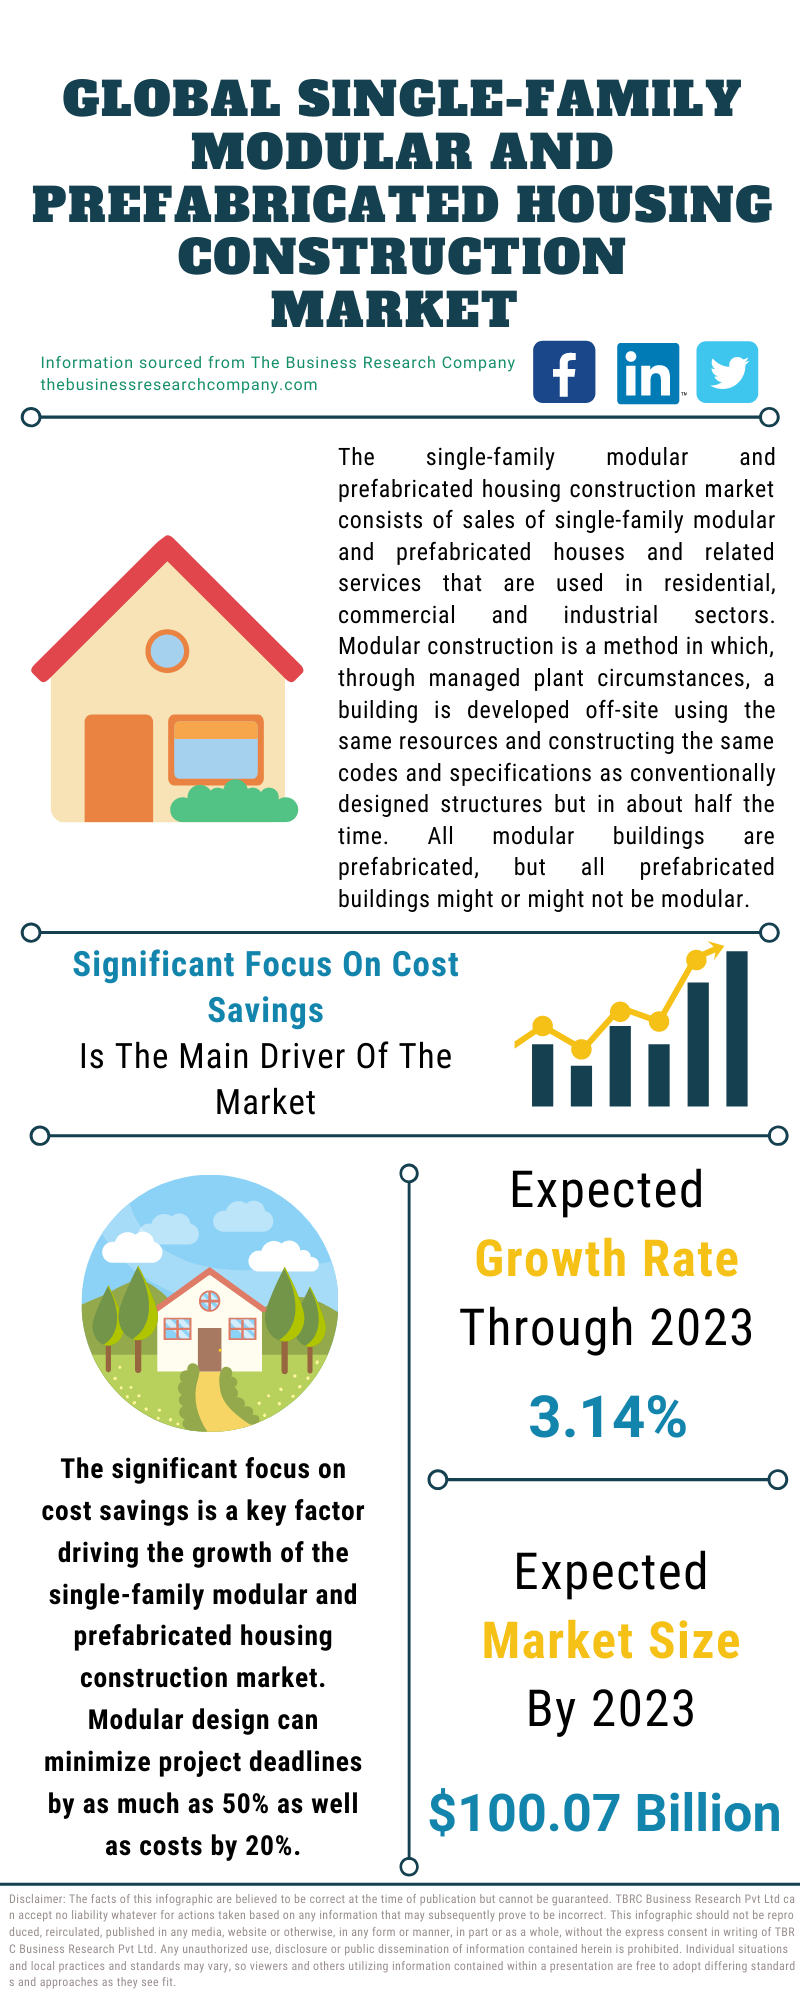 Single-Family Modular and Prefabricated Housing Construction Market